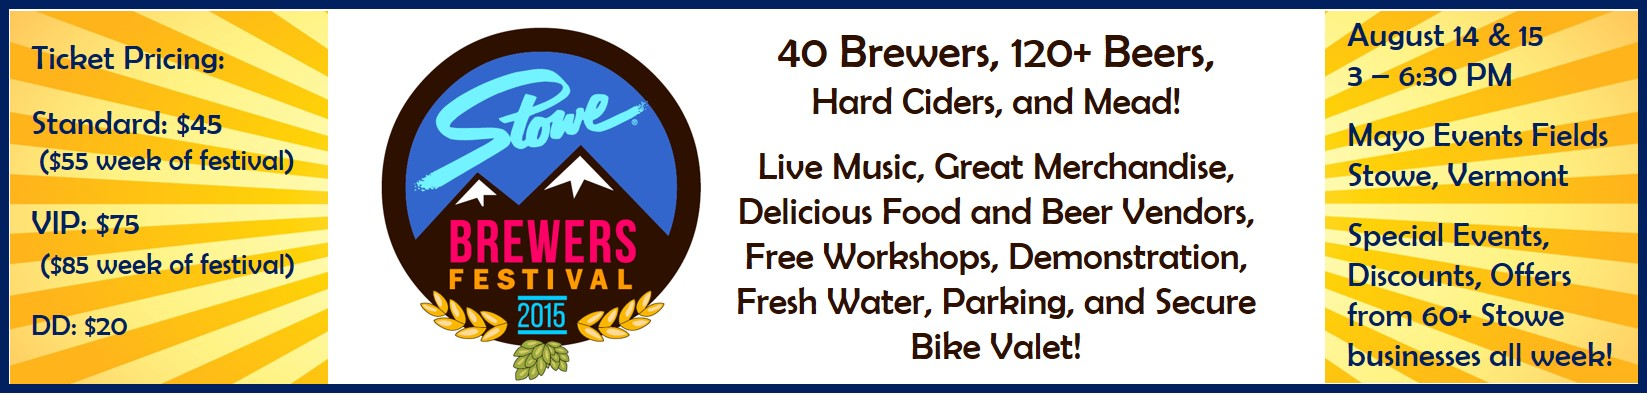 Tickets for Stowe Brewers Festival - Friday in Stowe from BeerFests.com